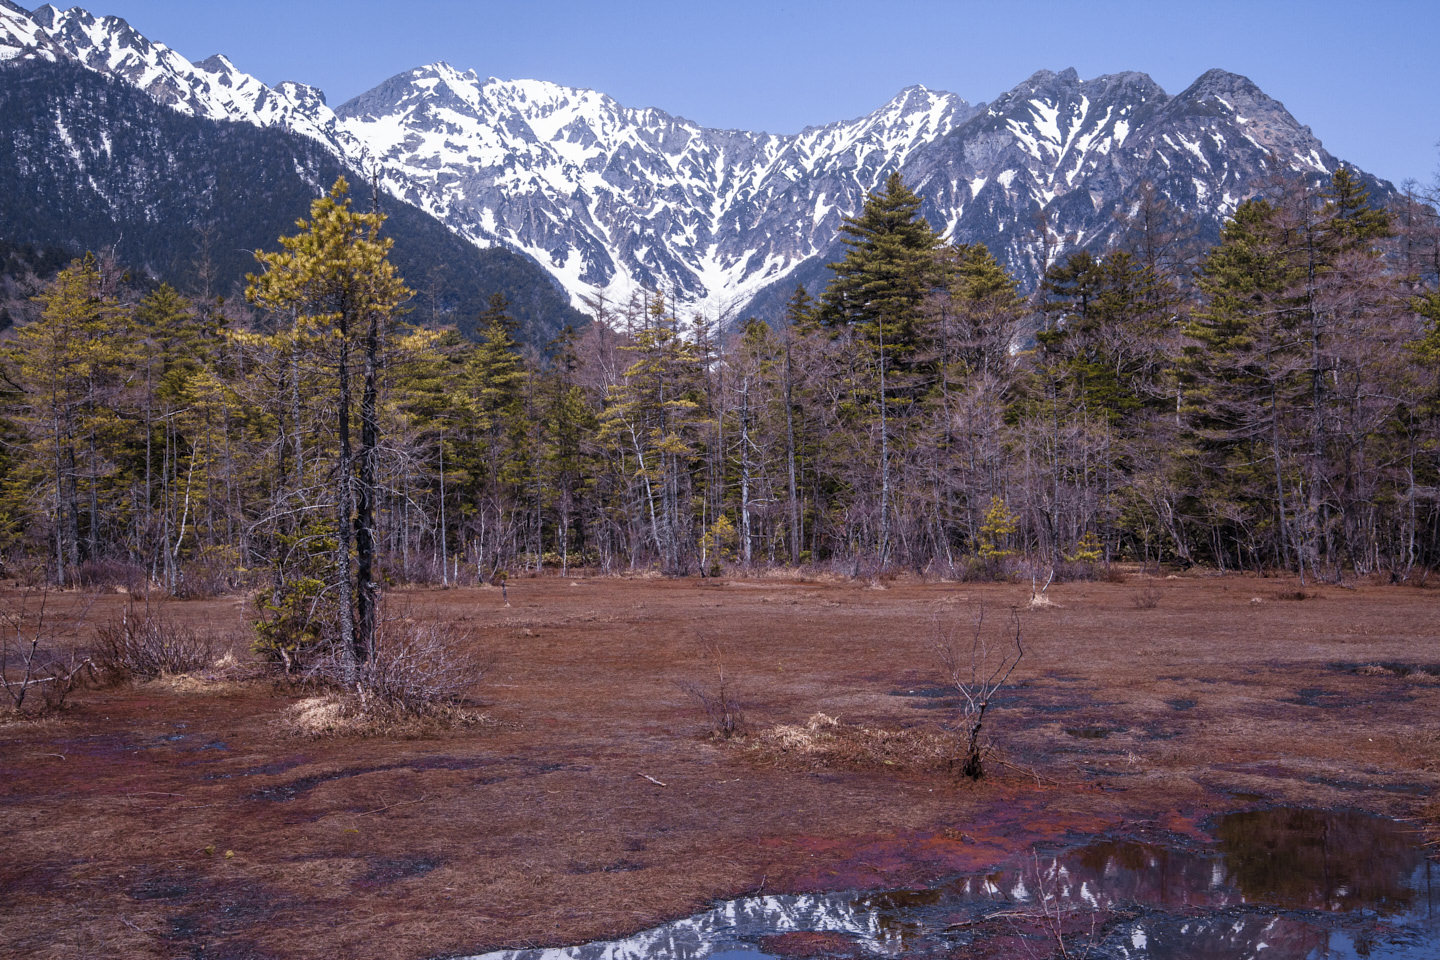 A dry patch of river in front of the towering snow-capped Japan Alps, Kamikochi